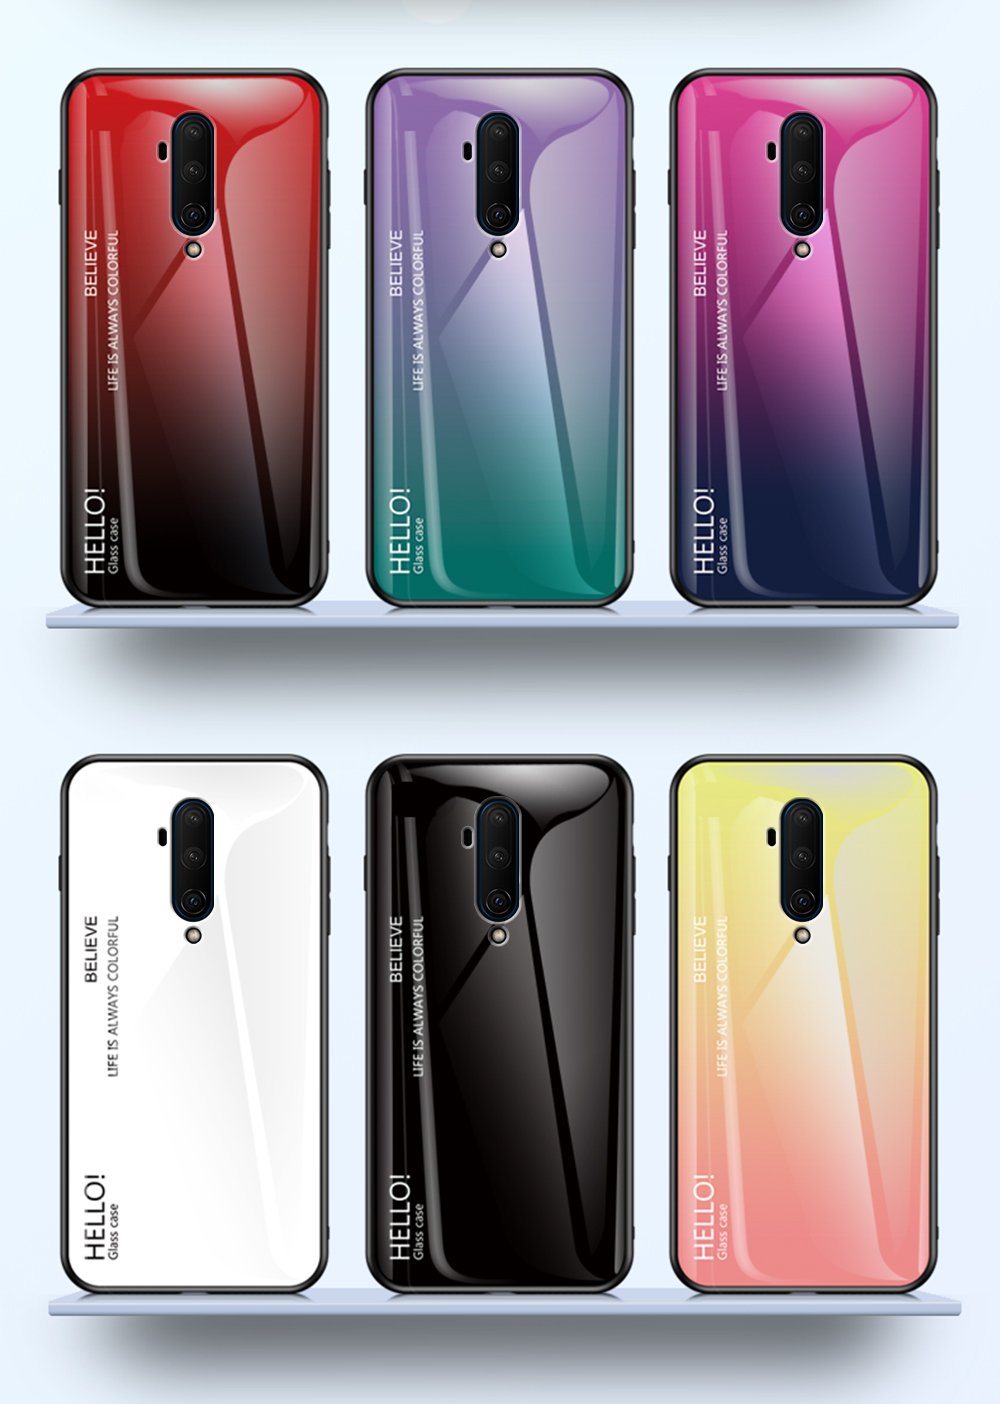 Colorful Gradient Tempered <font><b>Glass</b></font> phone <font><b>Case</b></font> For <font><b>Oneplus</b></font> 6 5 <font><b>5T</b></font> 6T Protective <font><b>Case</b></font> For 7 7T Pro Back Cover Protective <font><b>Case</b></font> Fundas image